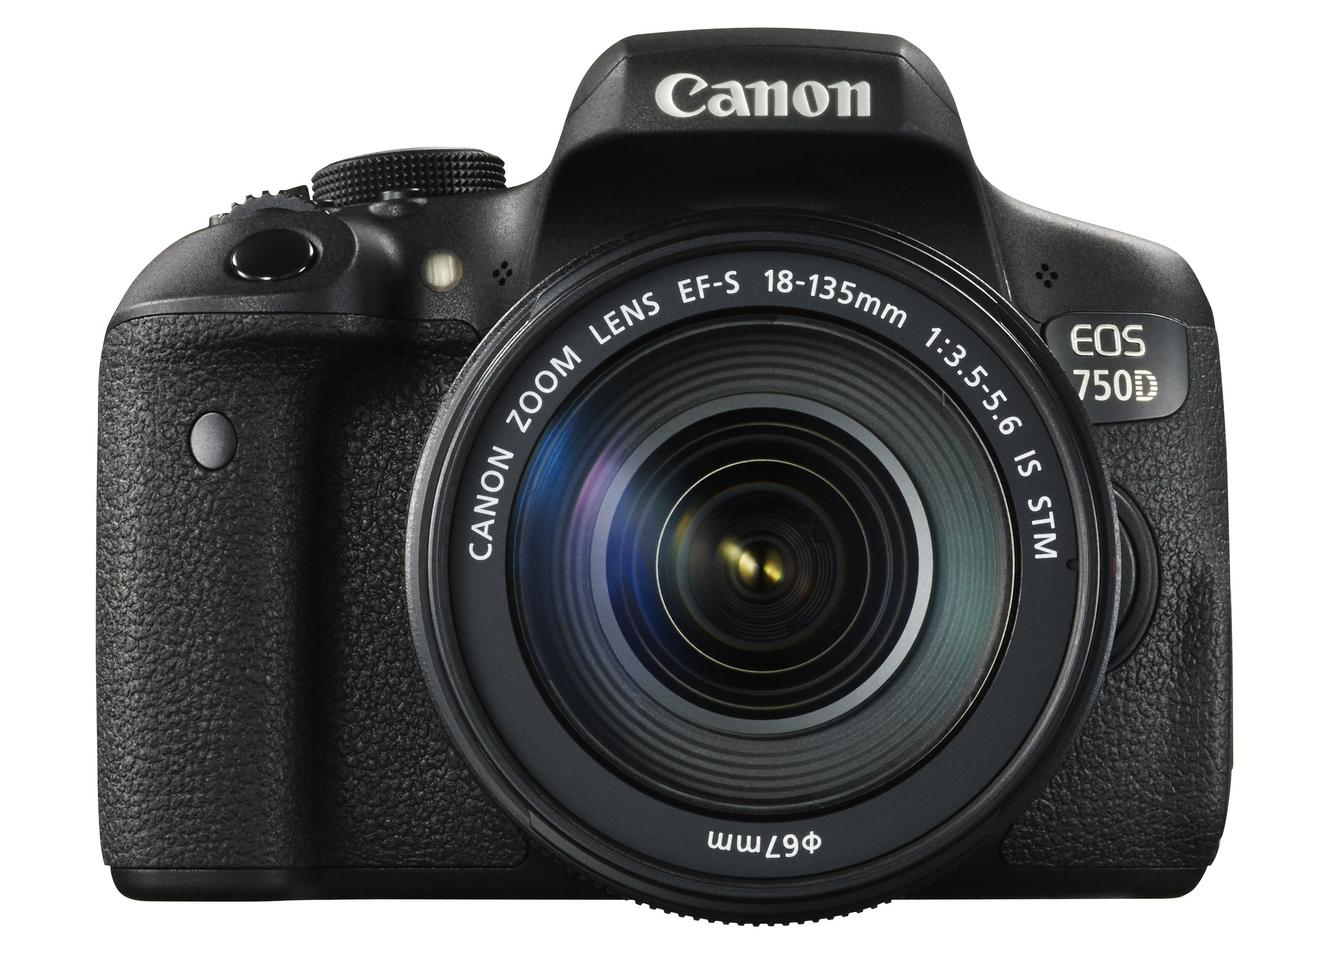 The Canon EOS 750D (Rebel T6i) is an entry-level DSLD